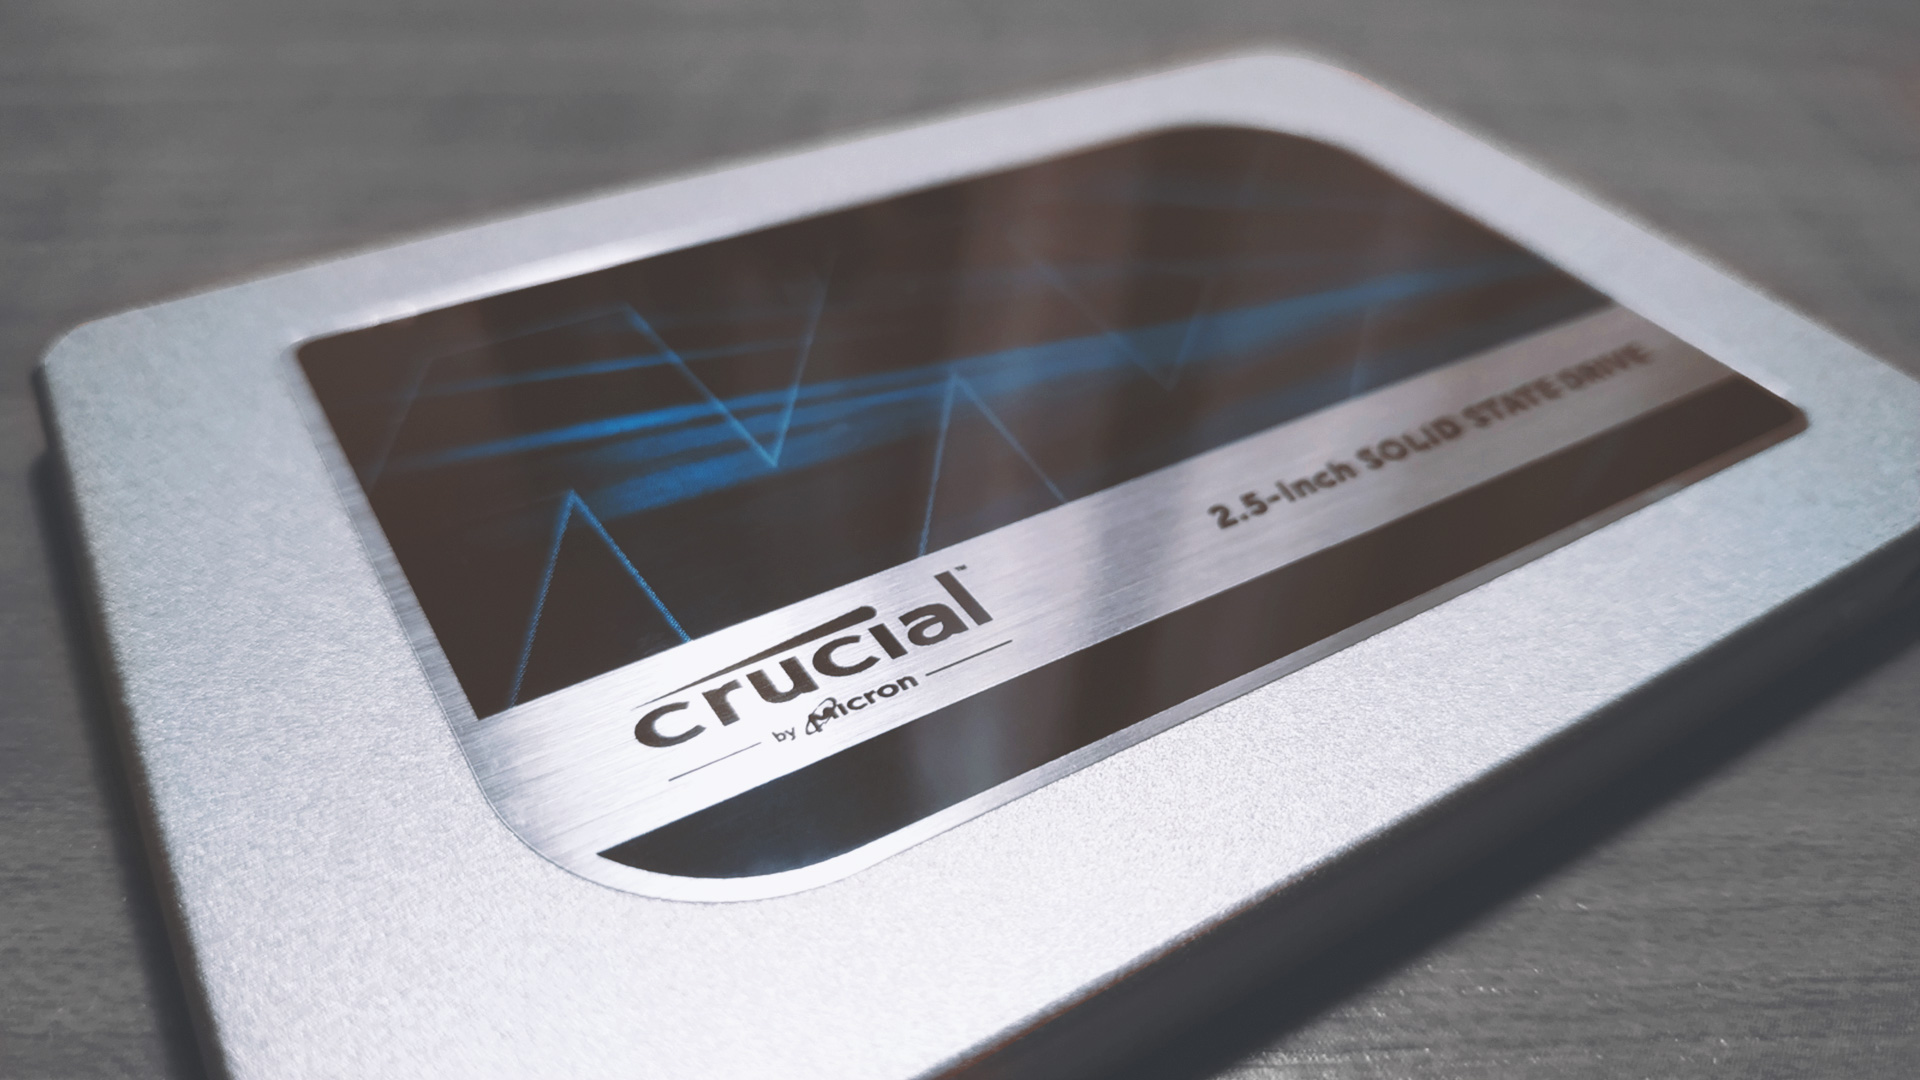 centrumher crucial ssd